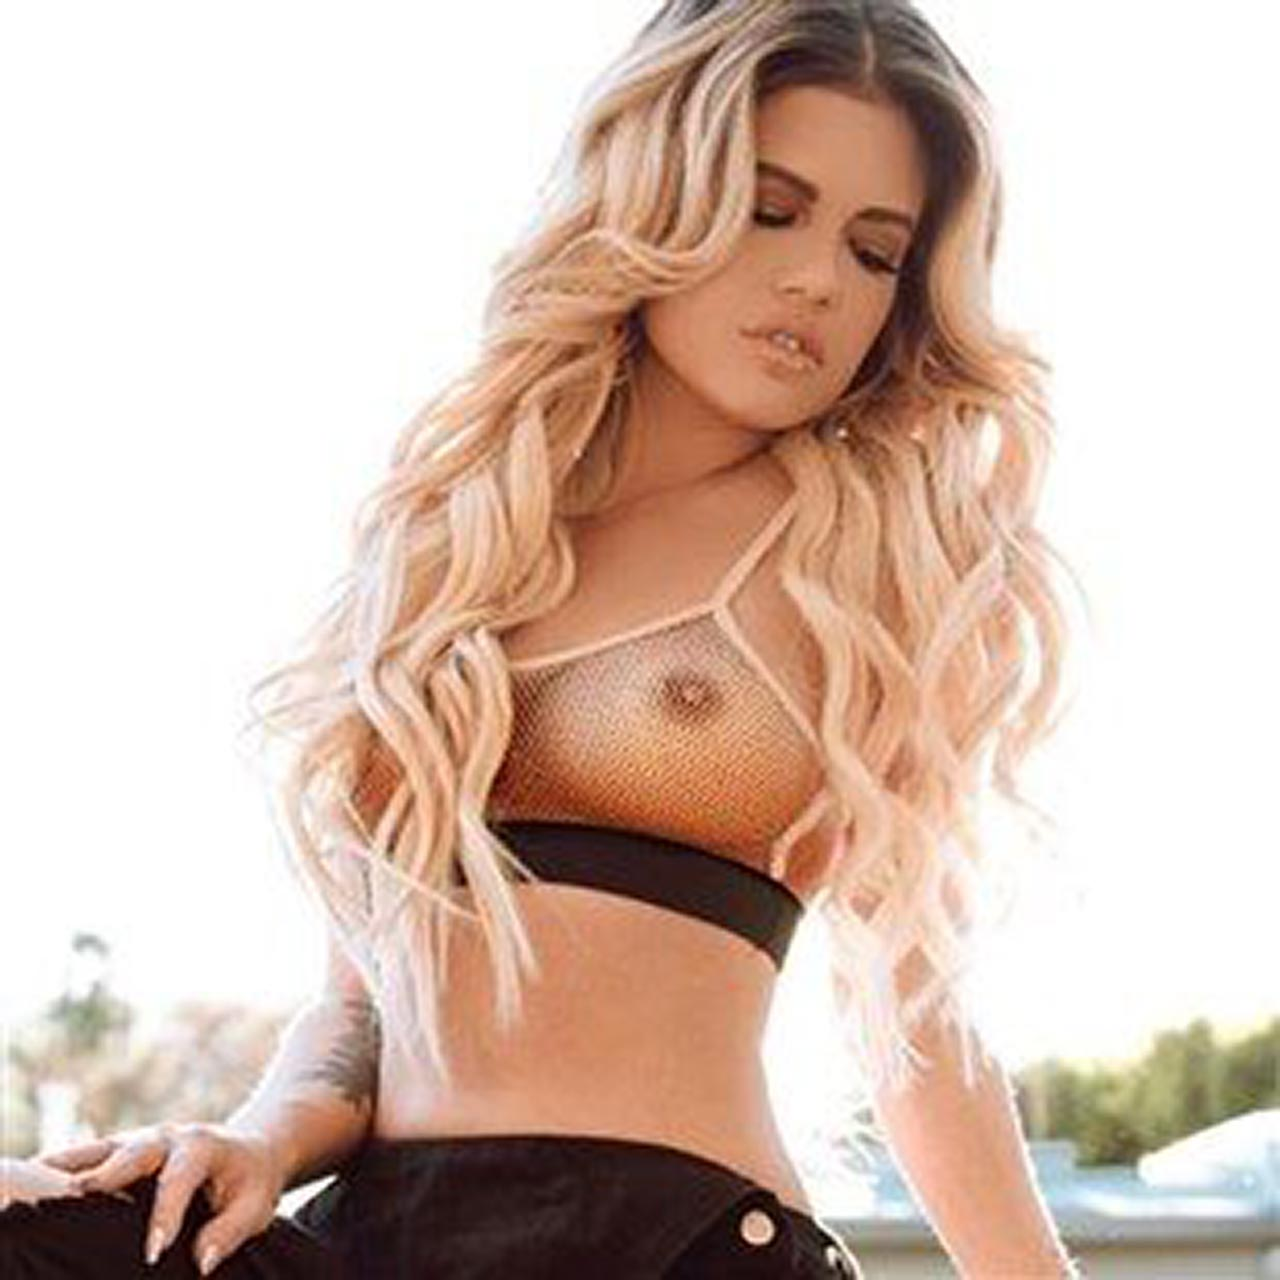 Chanel west coast porn interesting. Tell